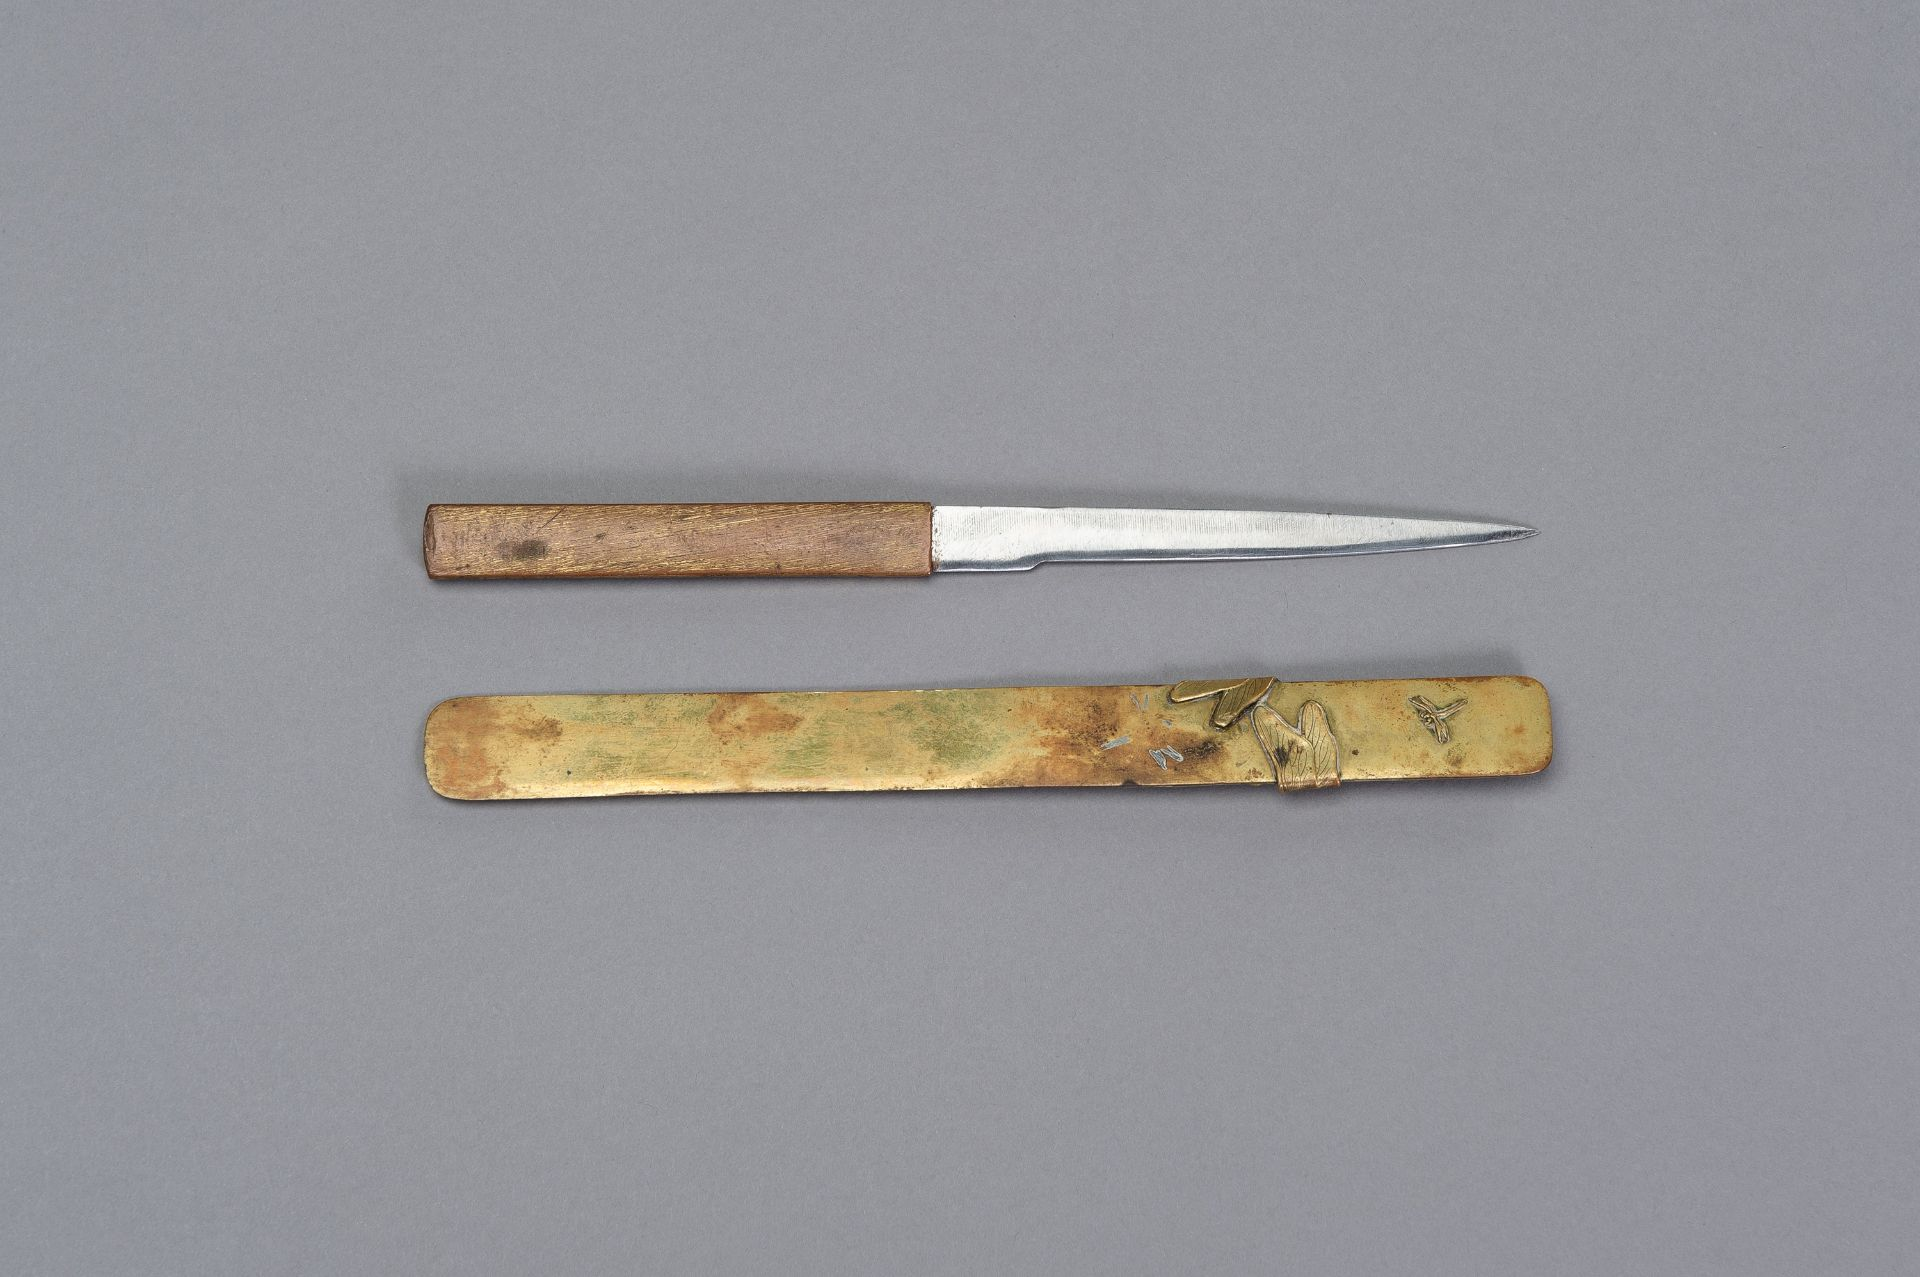 A COPPER KOZUKA WITH BLADE AND A SENTOKU PAGE TURNER WITH DRAGONFLY - Image 5 of 7